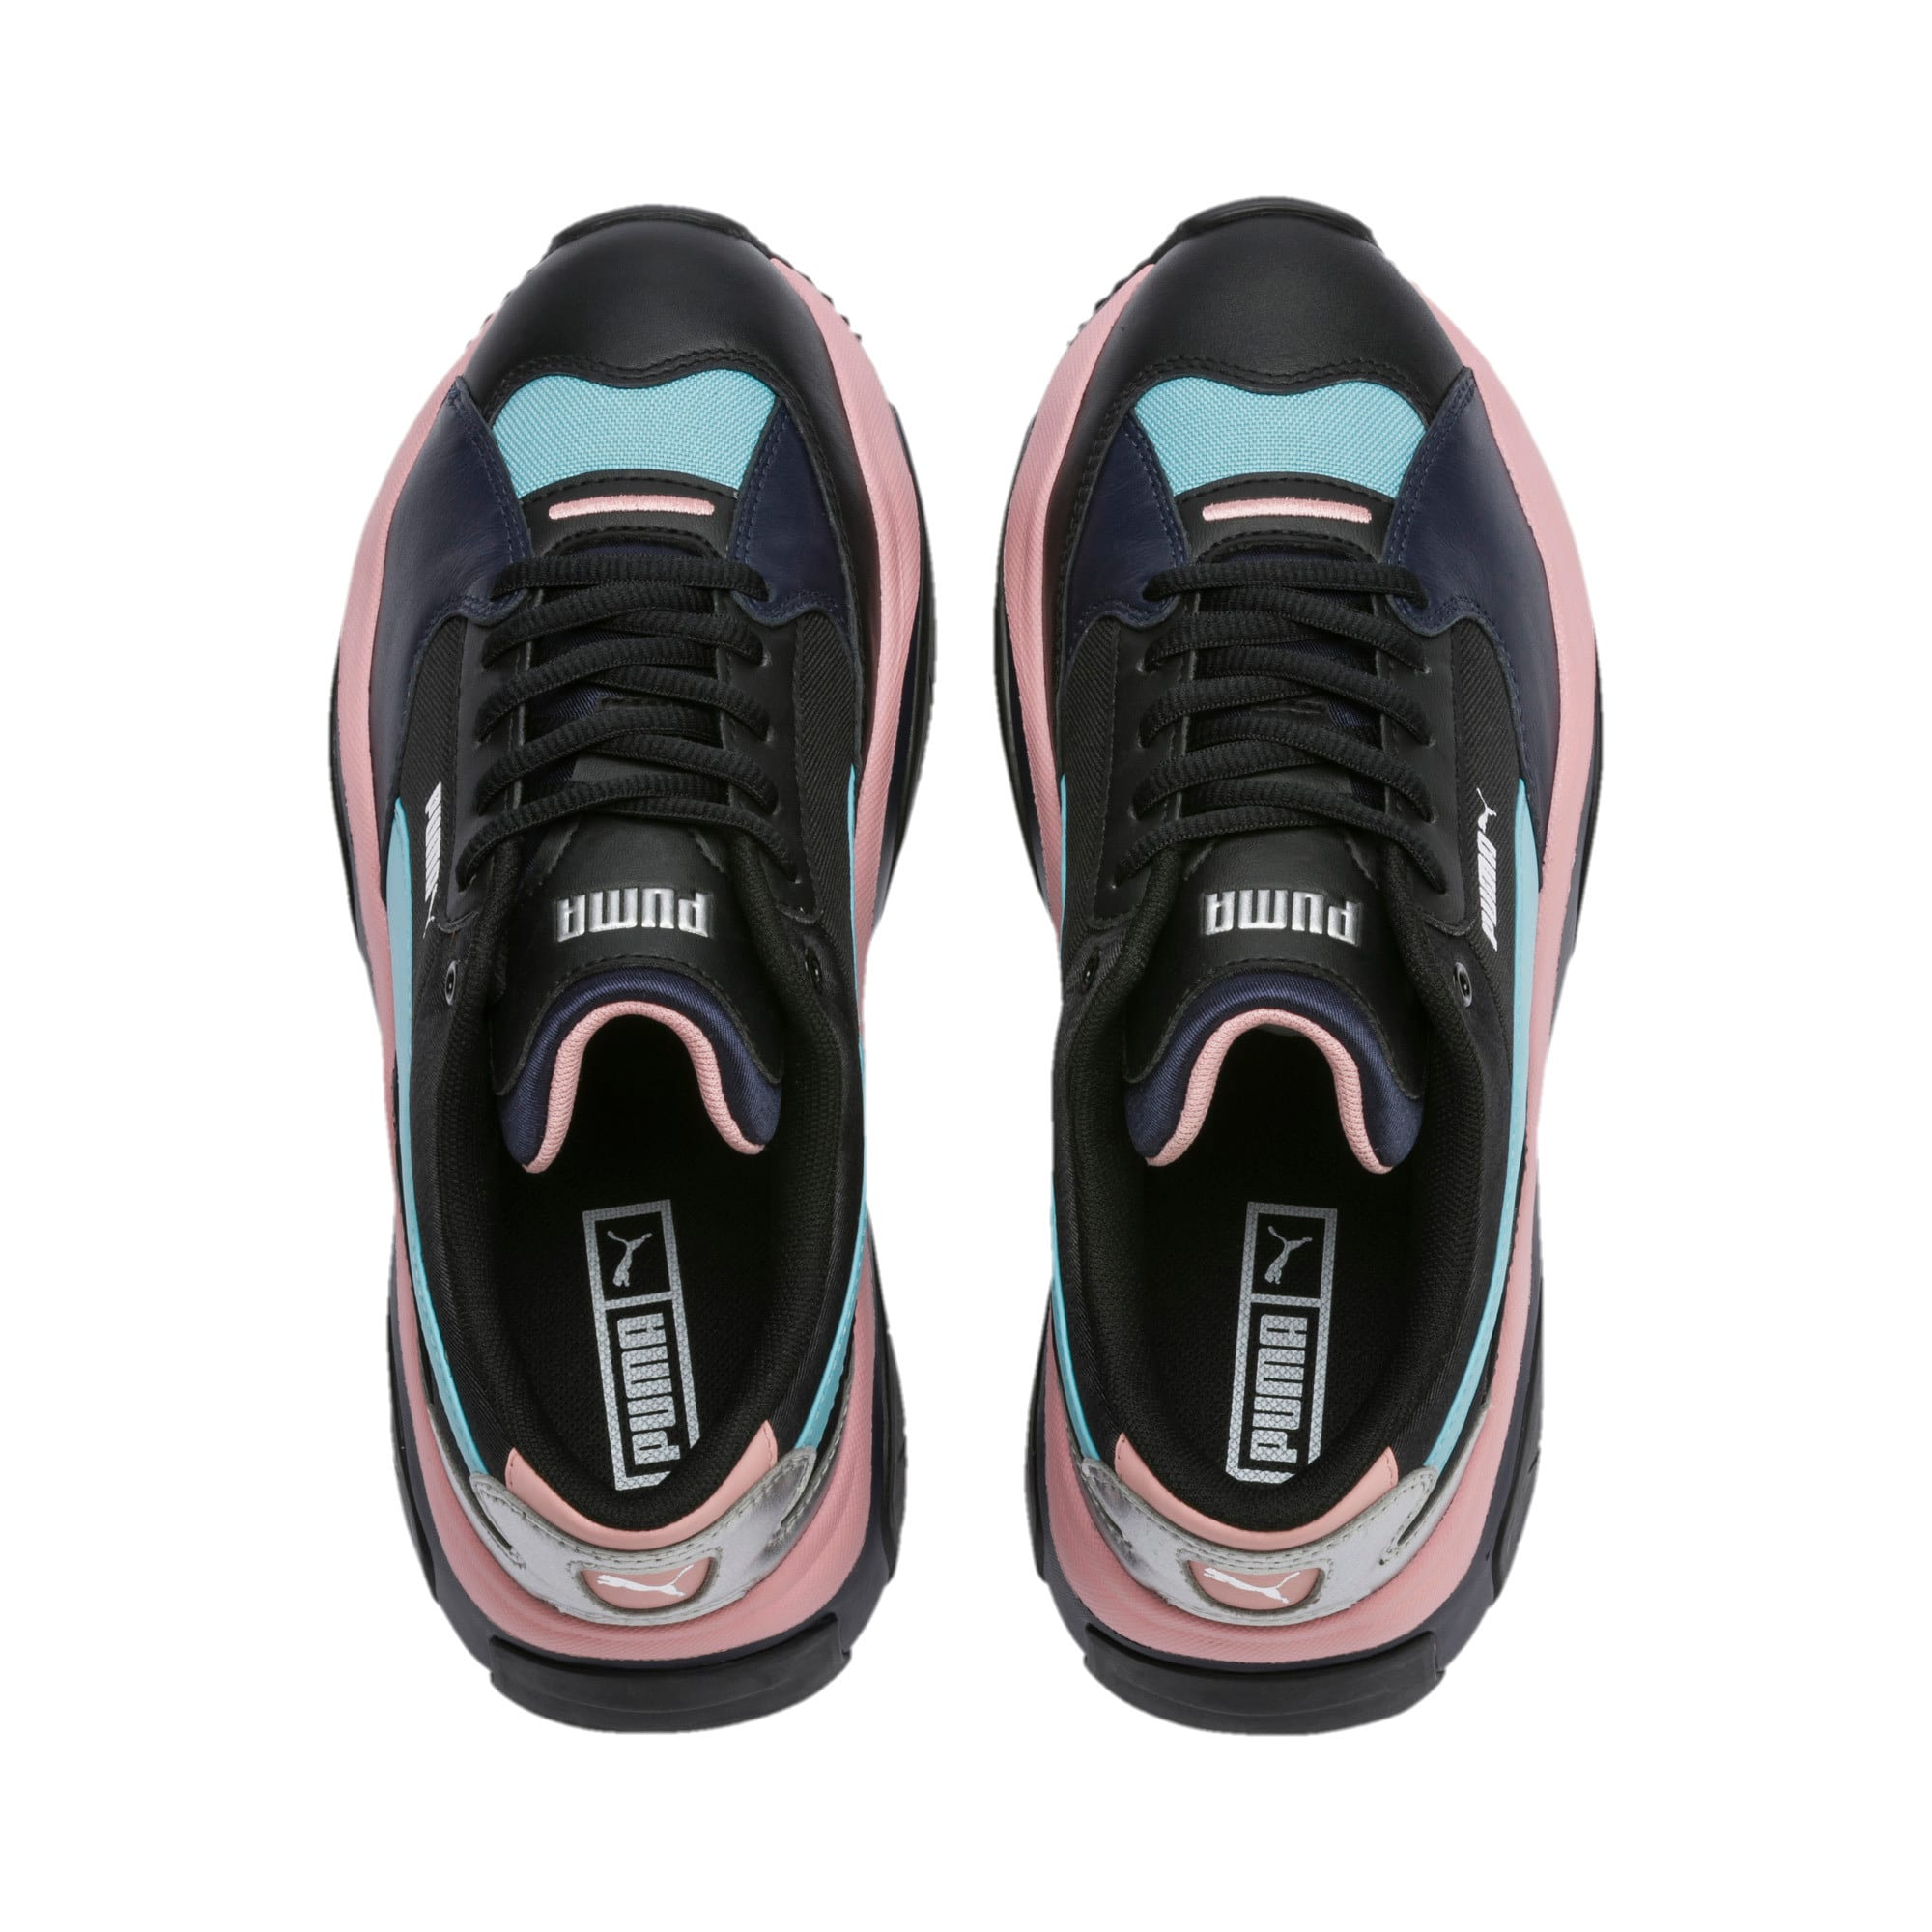 STORM.Y Metallic Women's Trainers, Puma Black, large